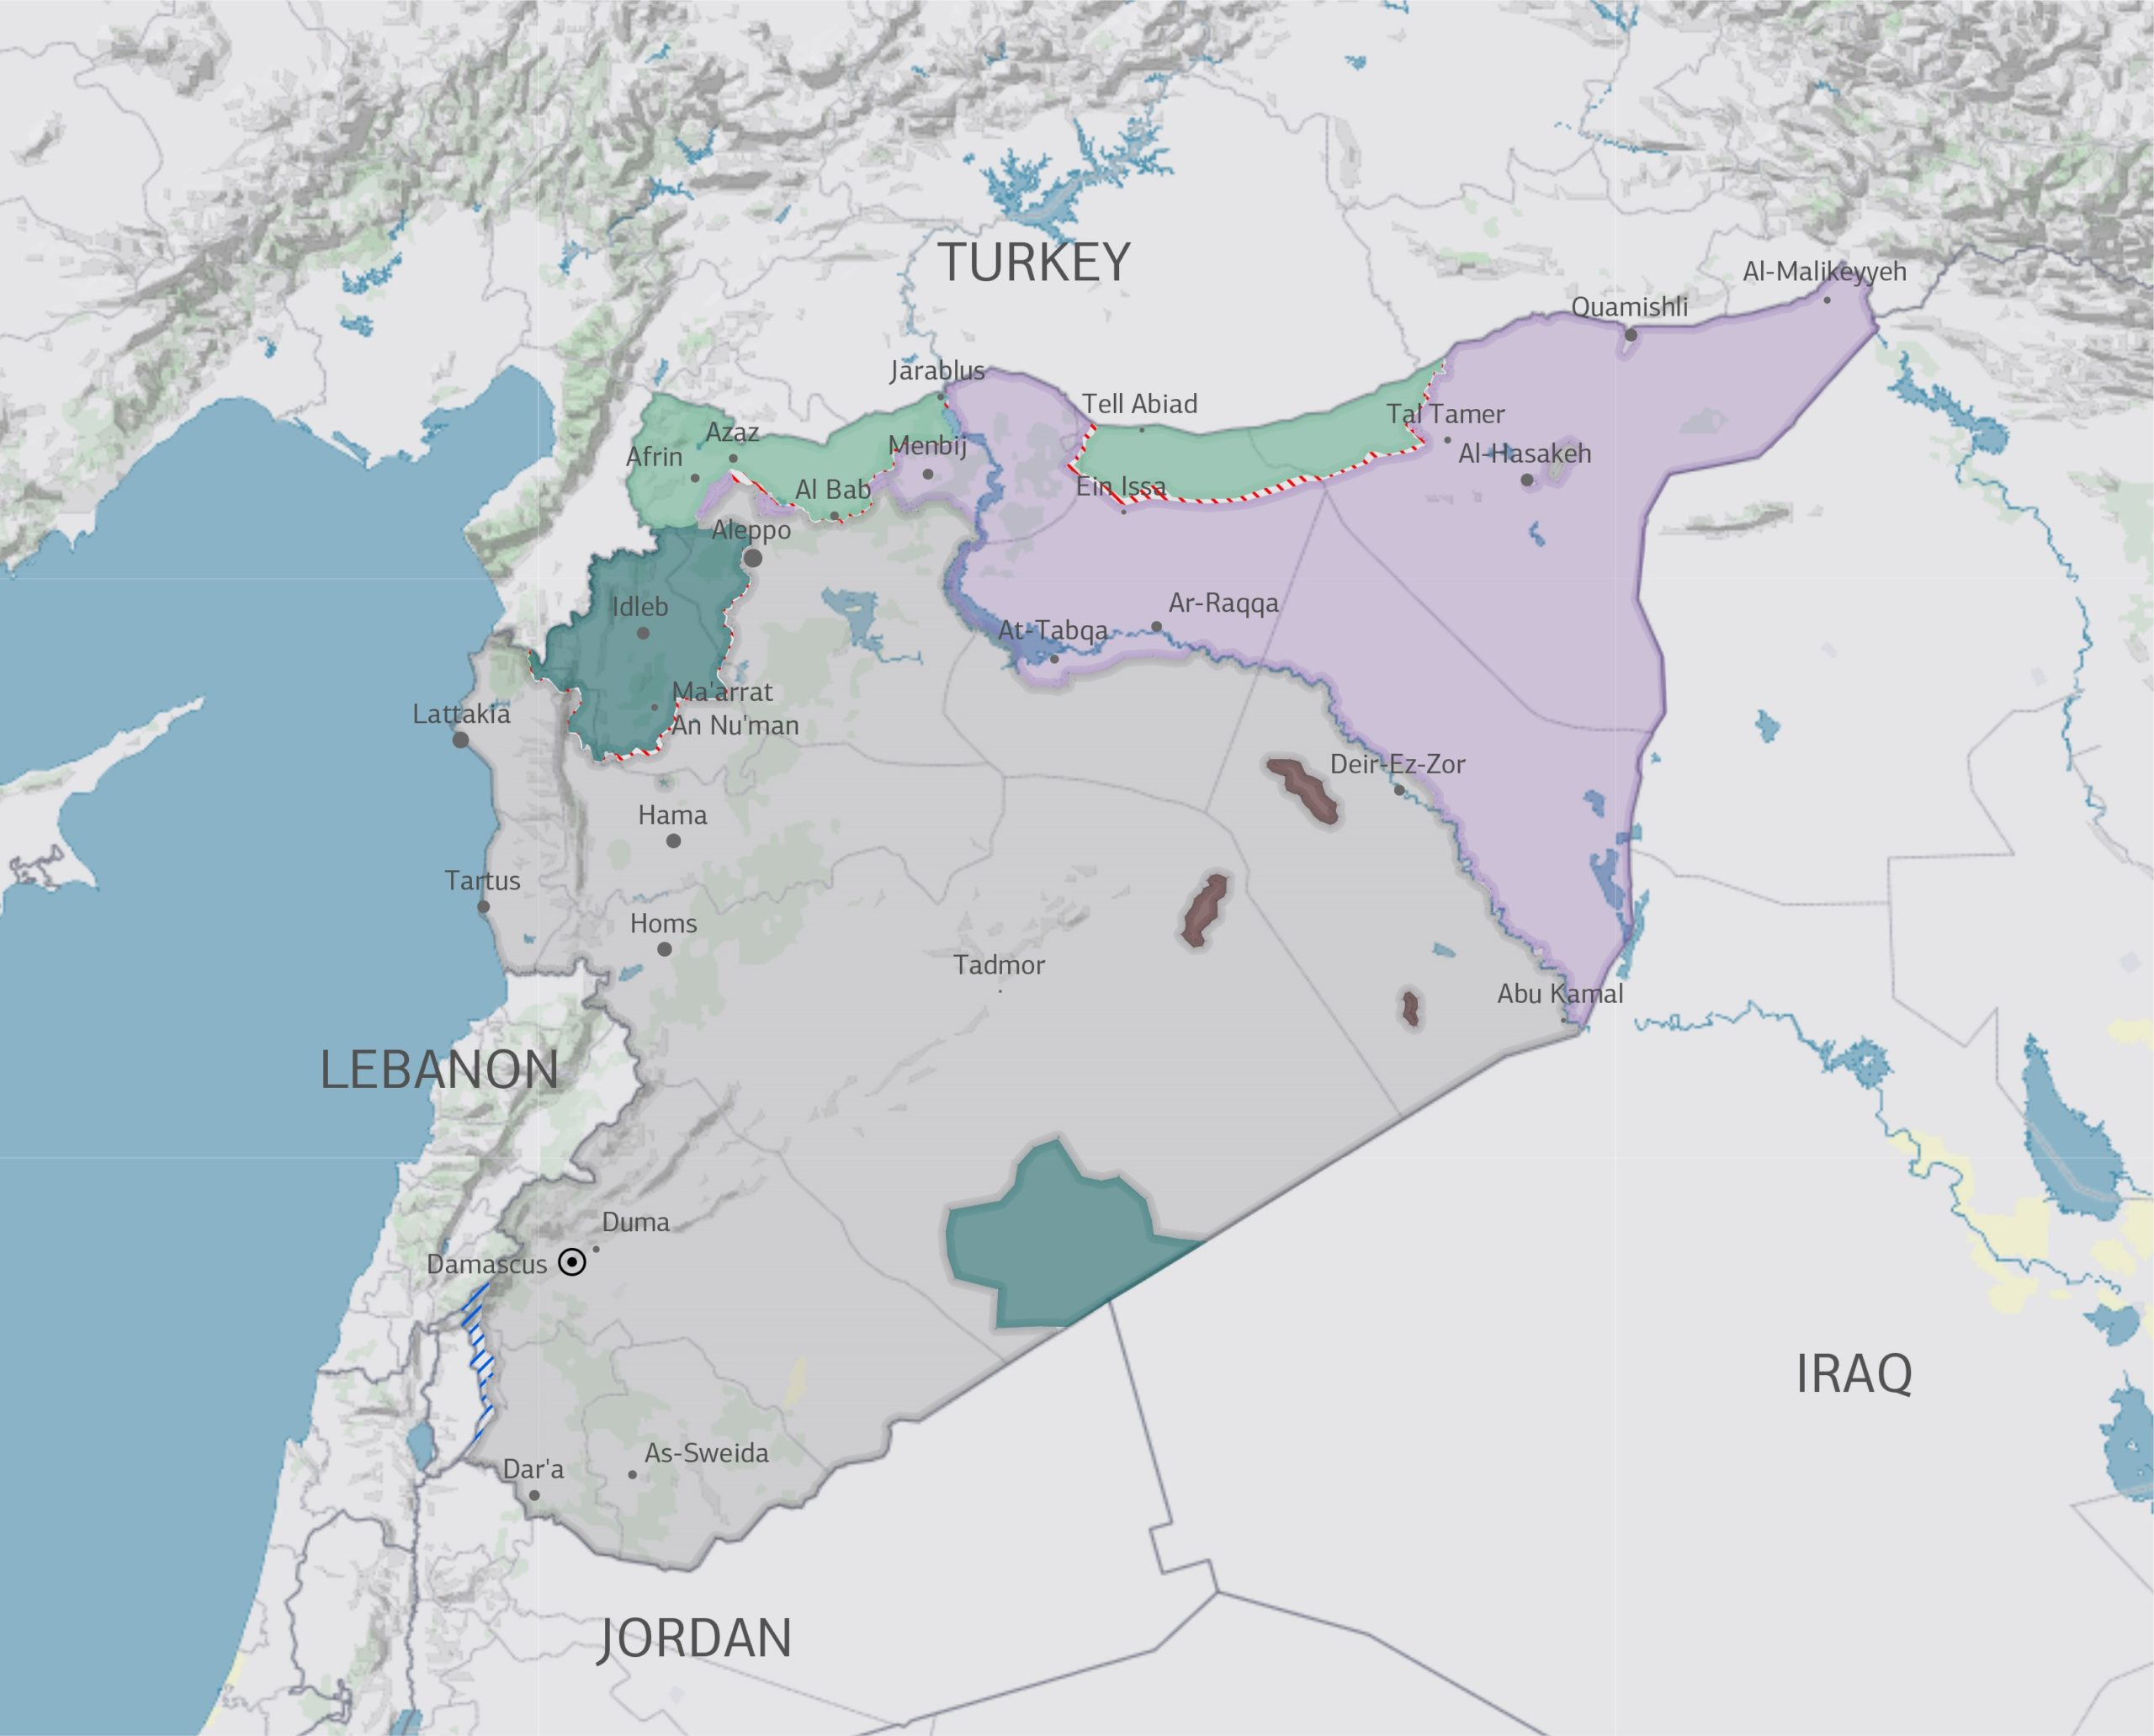 Syria in 2020: New Response Challenges to an Evolving Crisis